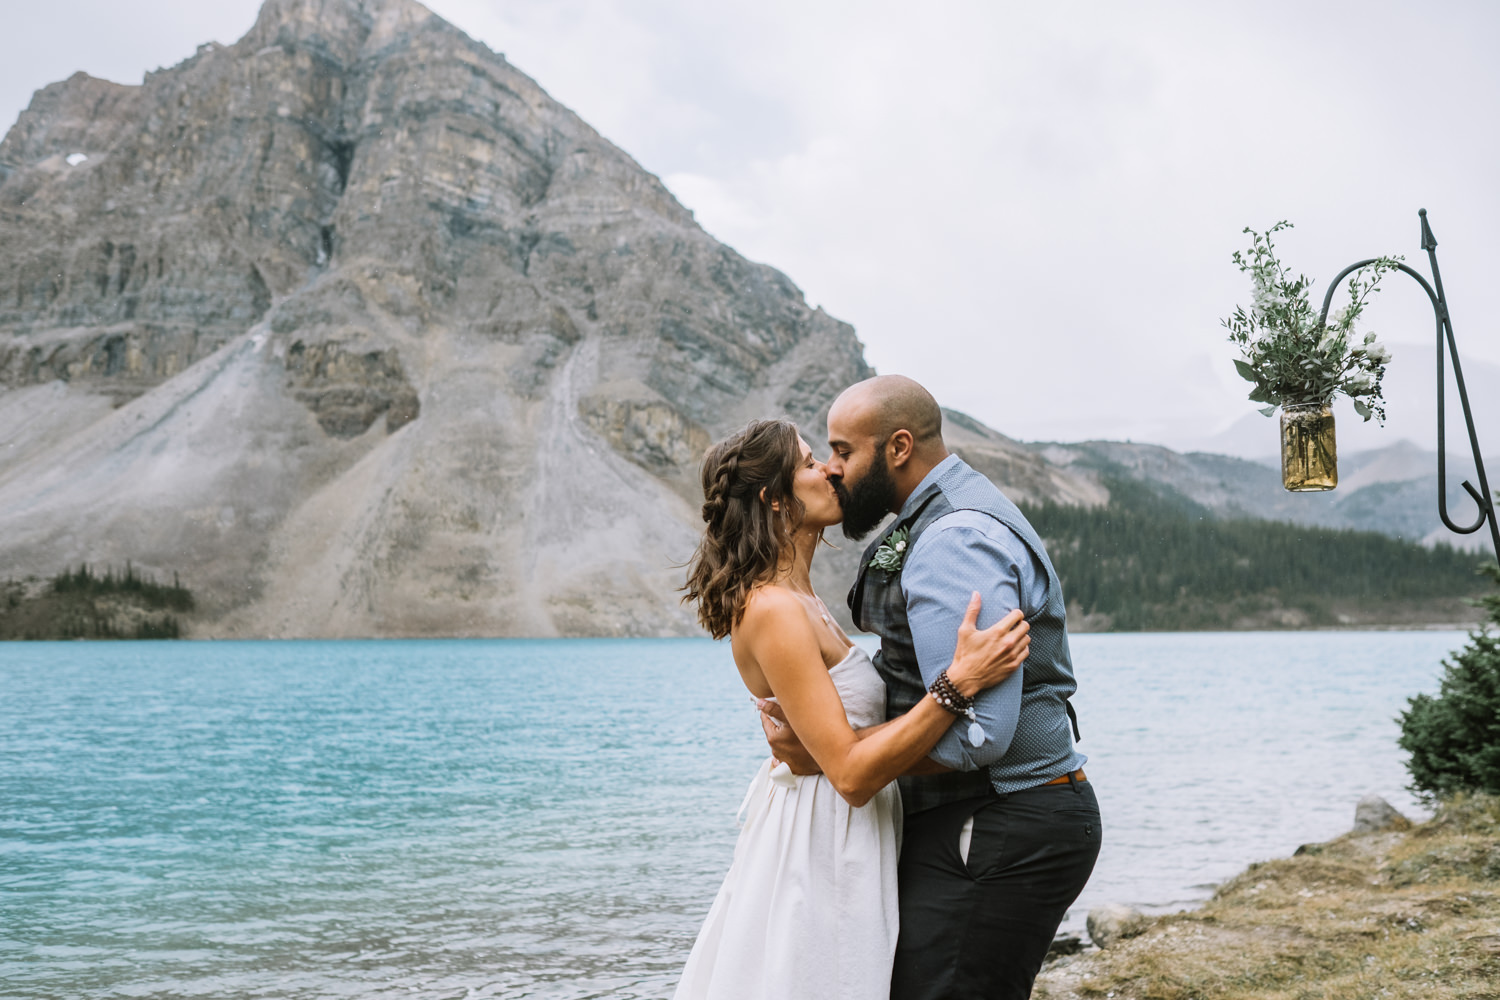 banff-wedding-photographer-packages-10036